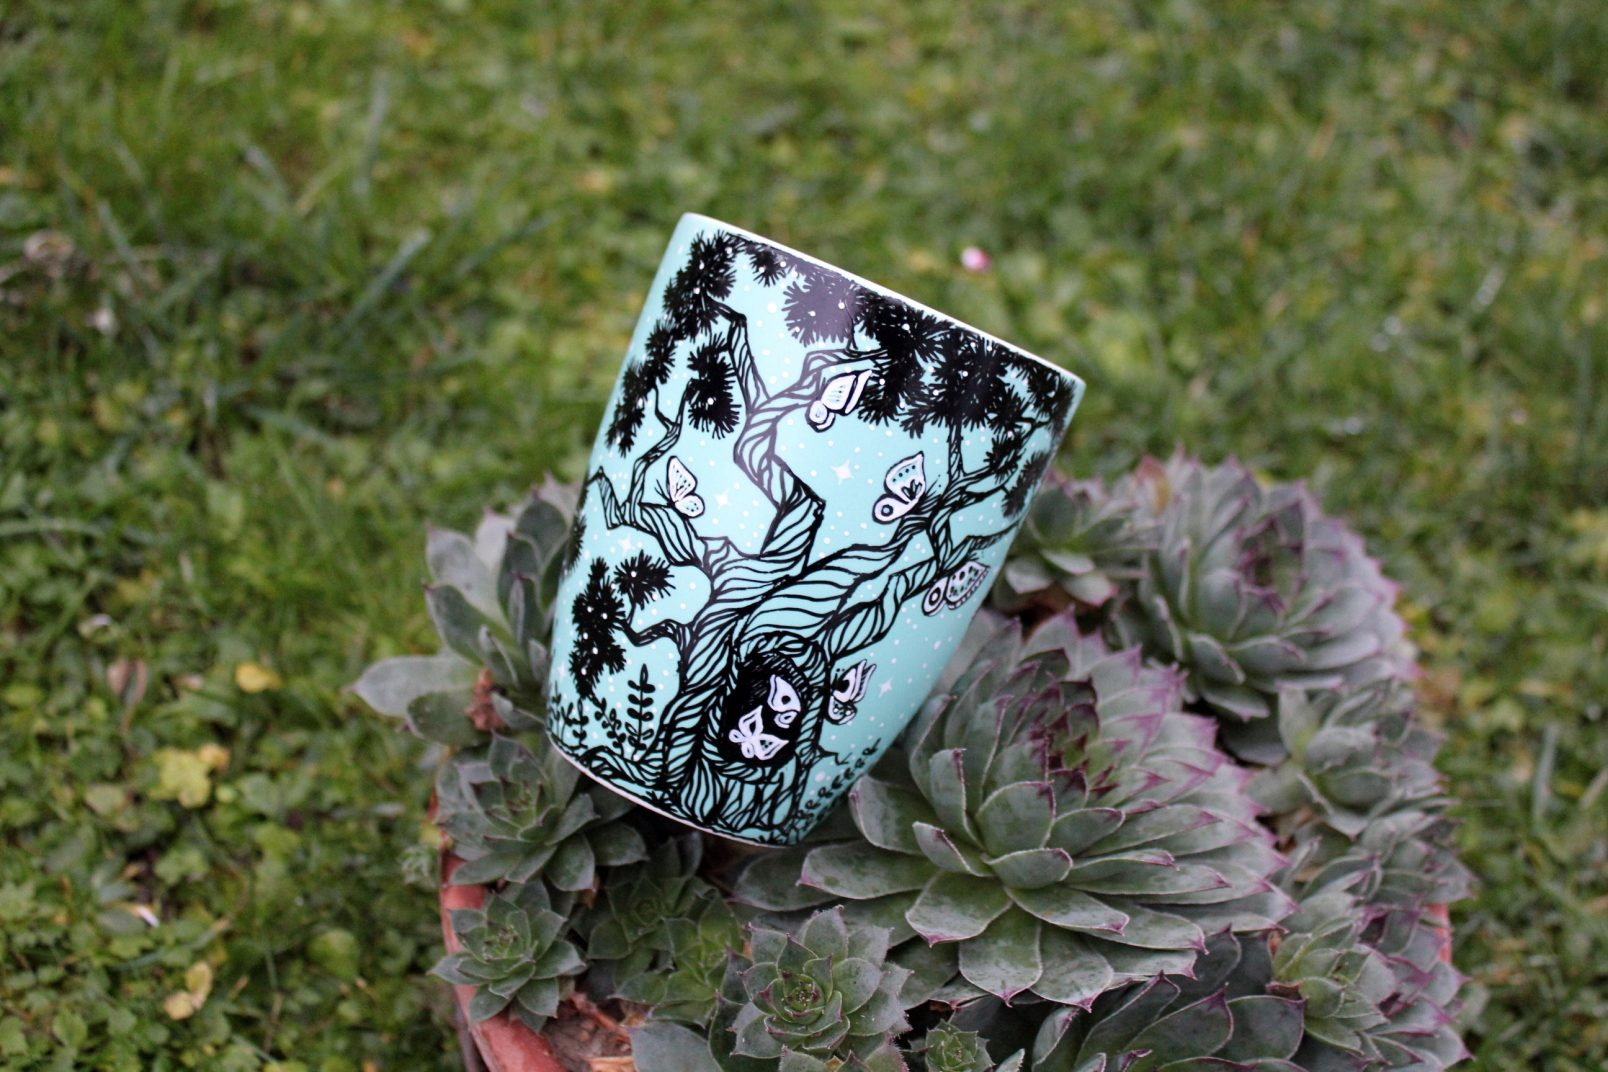 butterfly tree with wandering girl hand painted illustration pine tree meadow flowers handmade gift for coffee lovers tea cup online store made by shewolfka